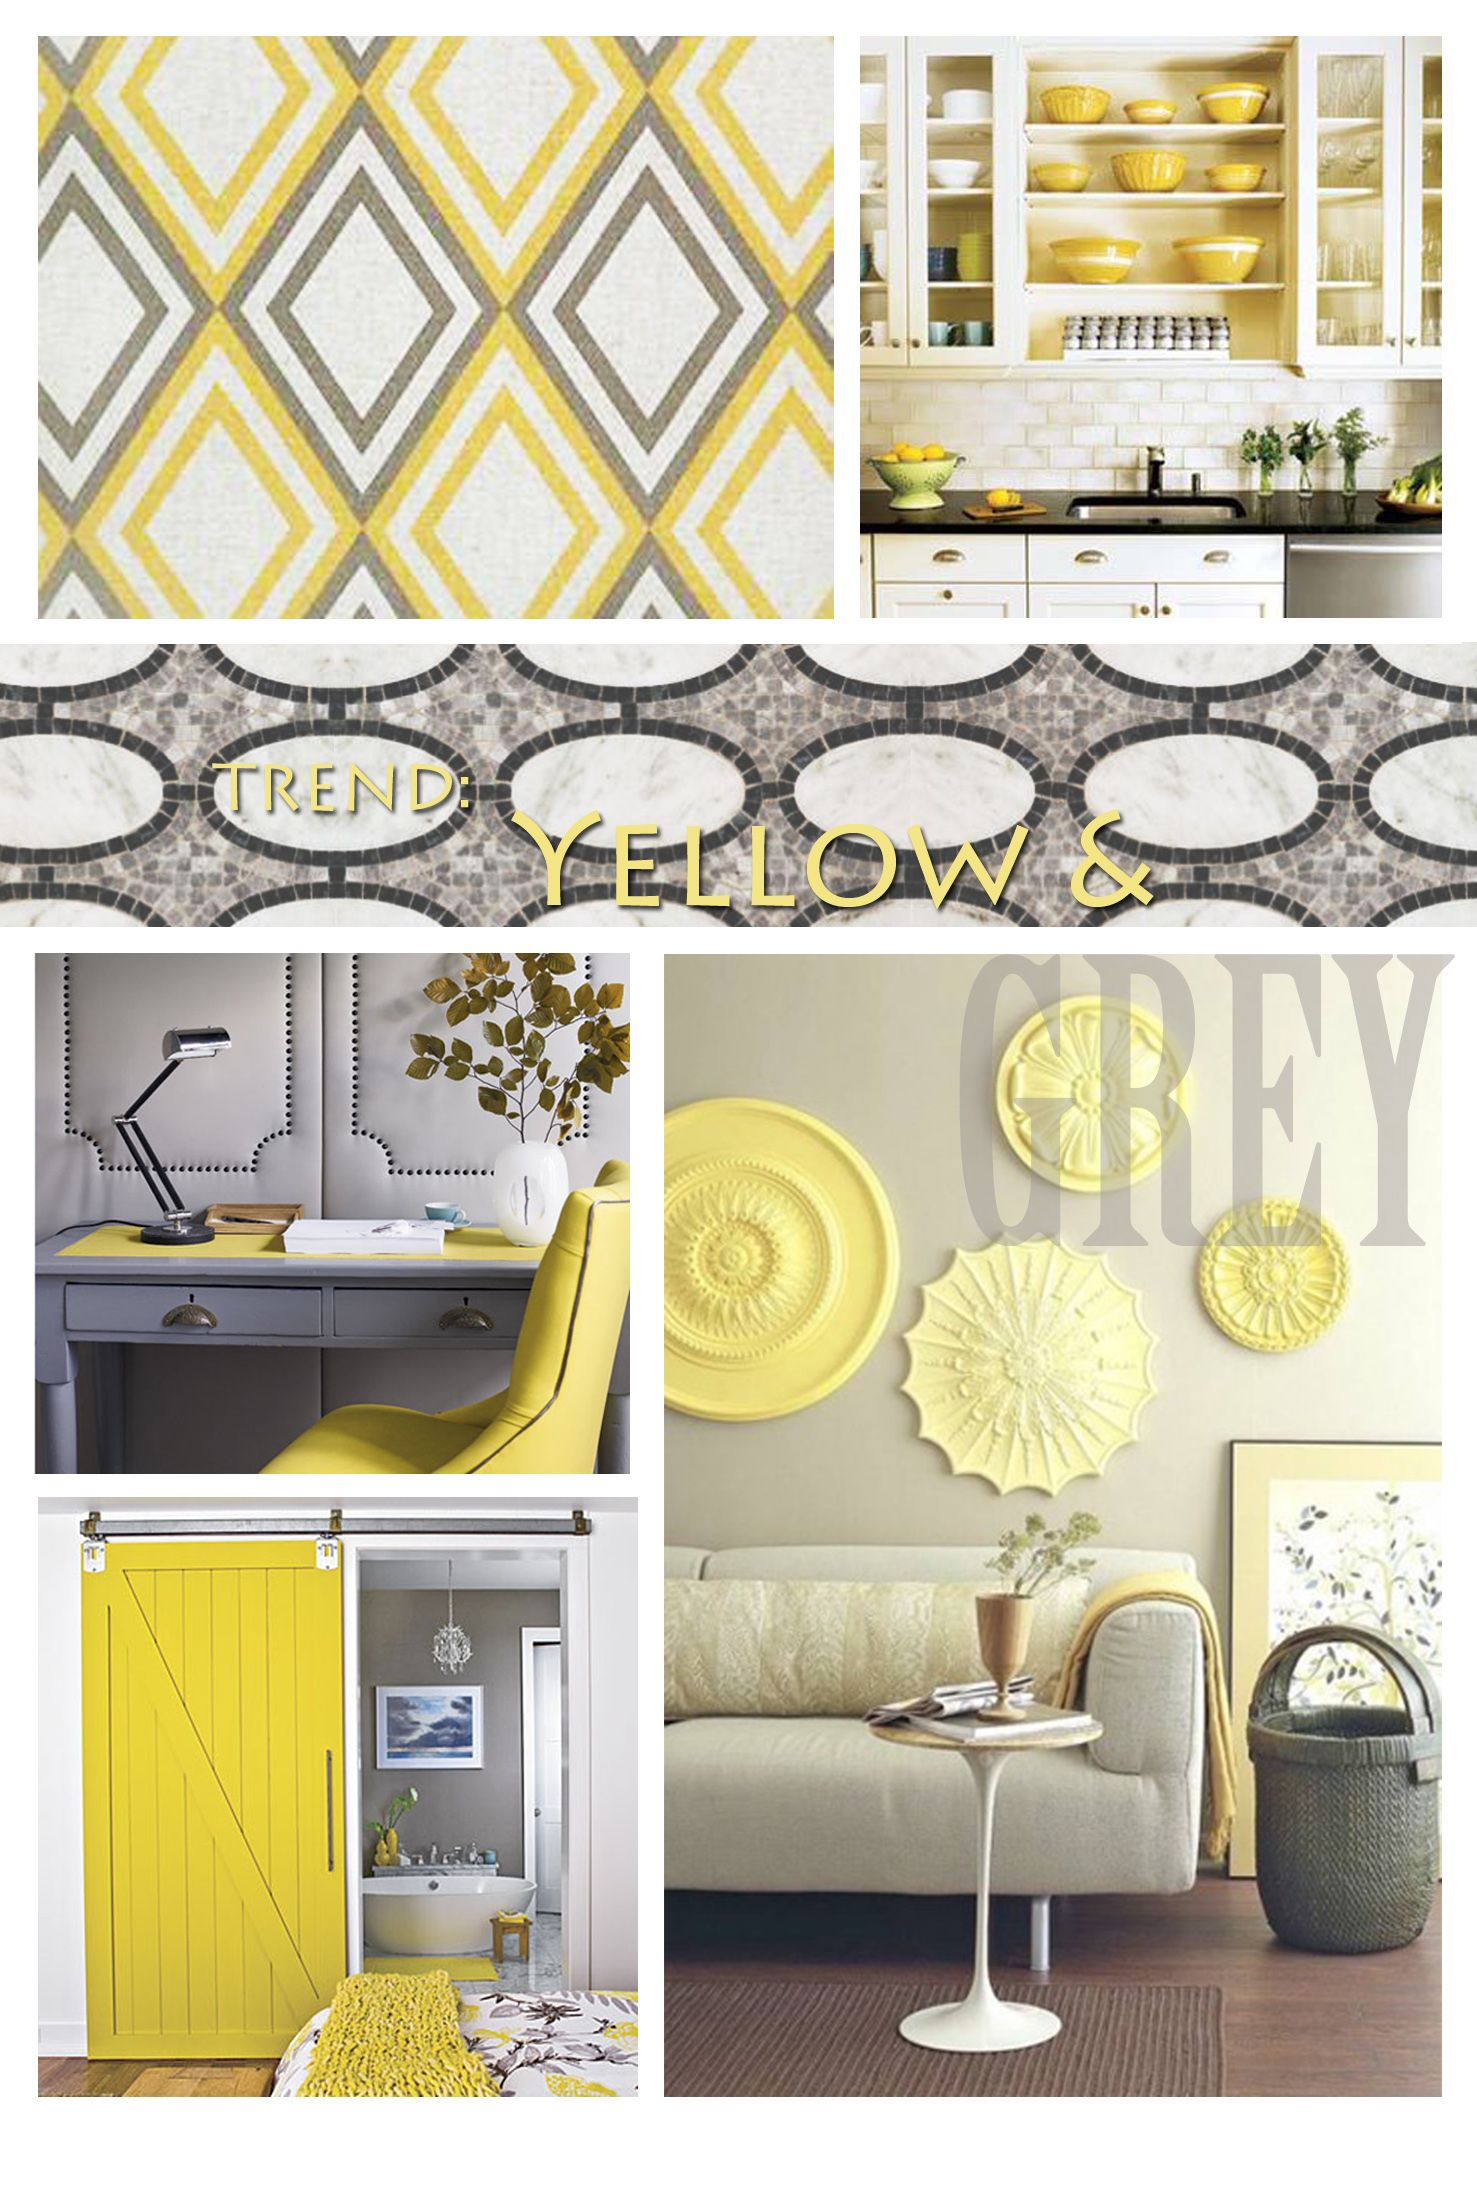 Trend: Yellow and Grey | AMEM | Pinterest | Family office, Teal and Gray